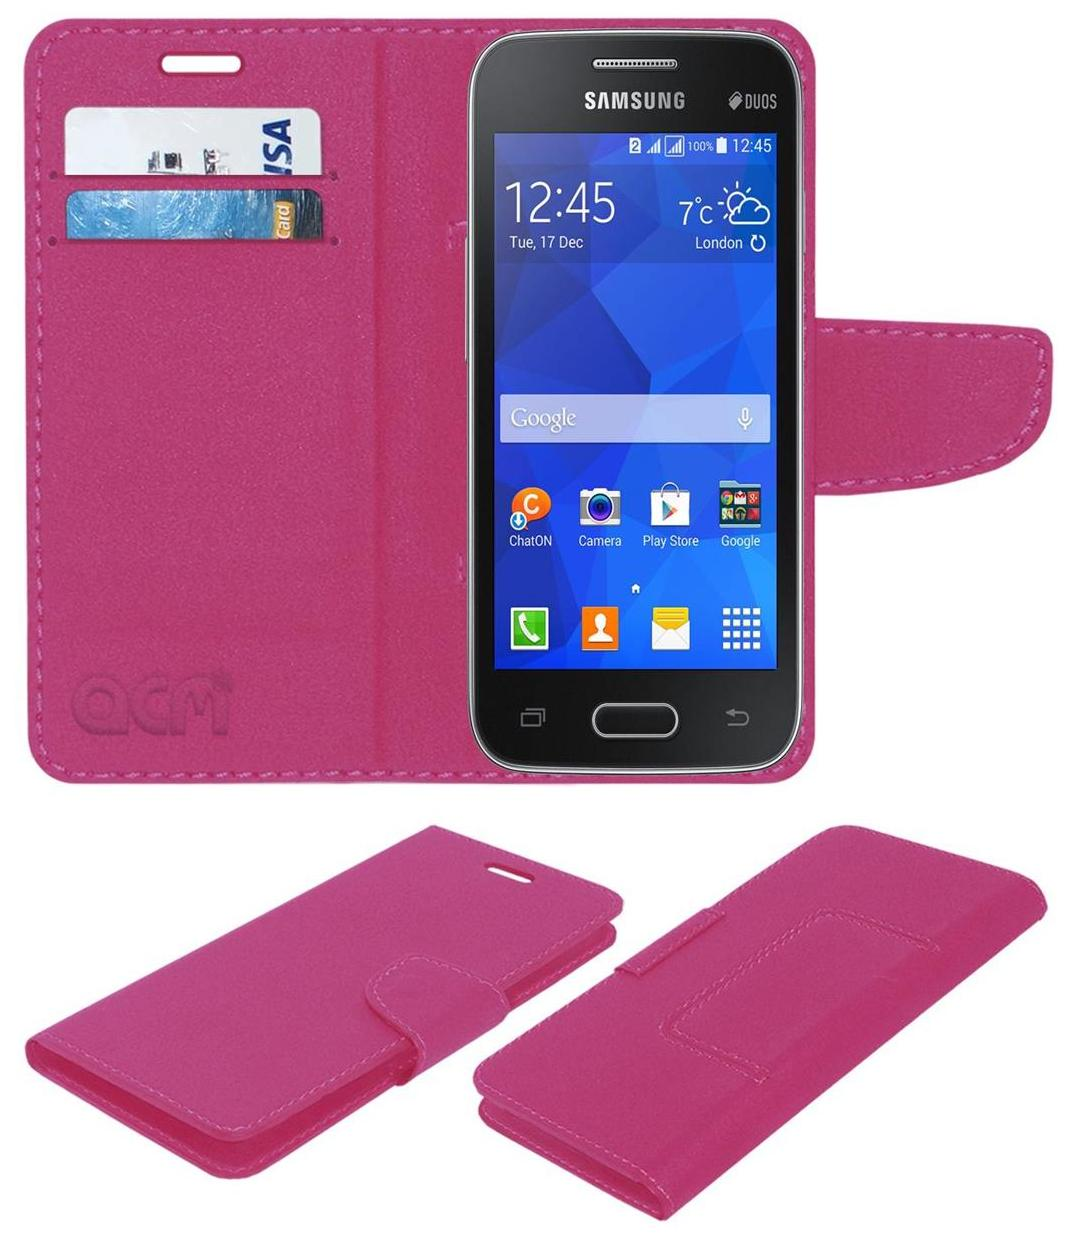 Acm Mobile Leather Flip Flap Wallet Case for Samsung Galaxy Ace Nxt Sm G313h Mobile Cover Pink by Accessories Masters